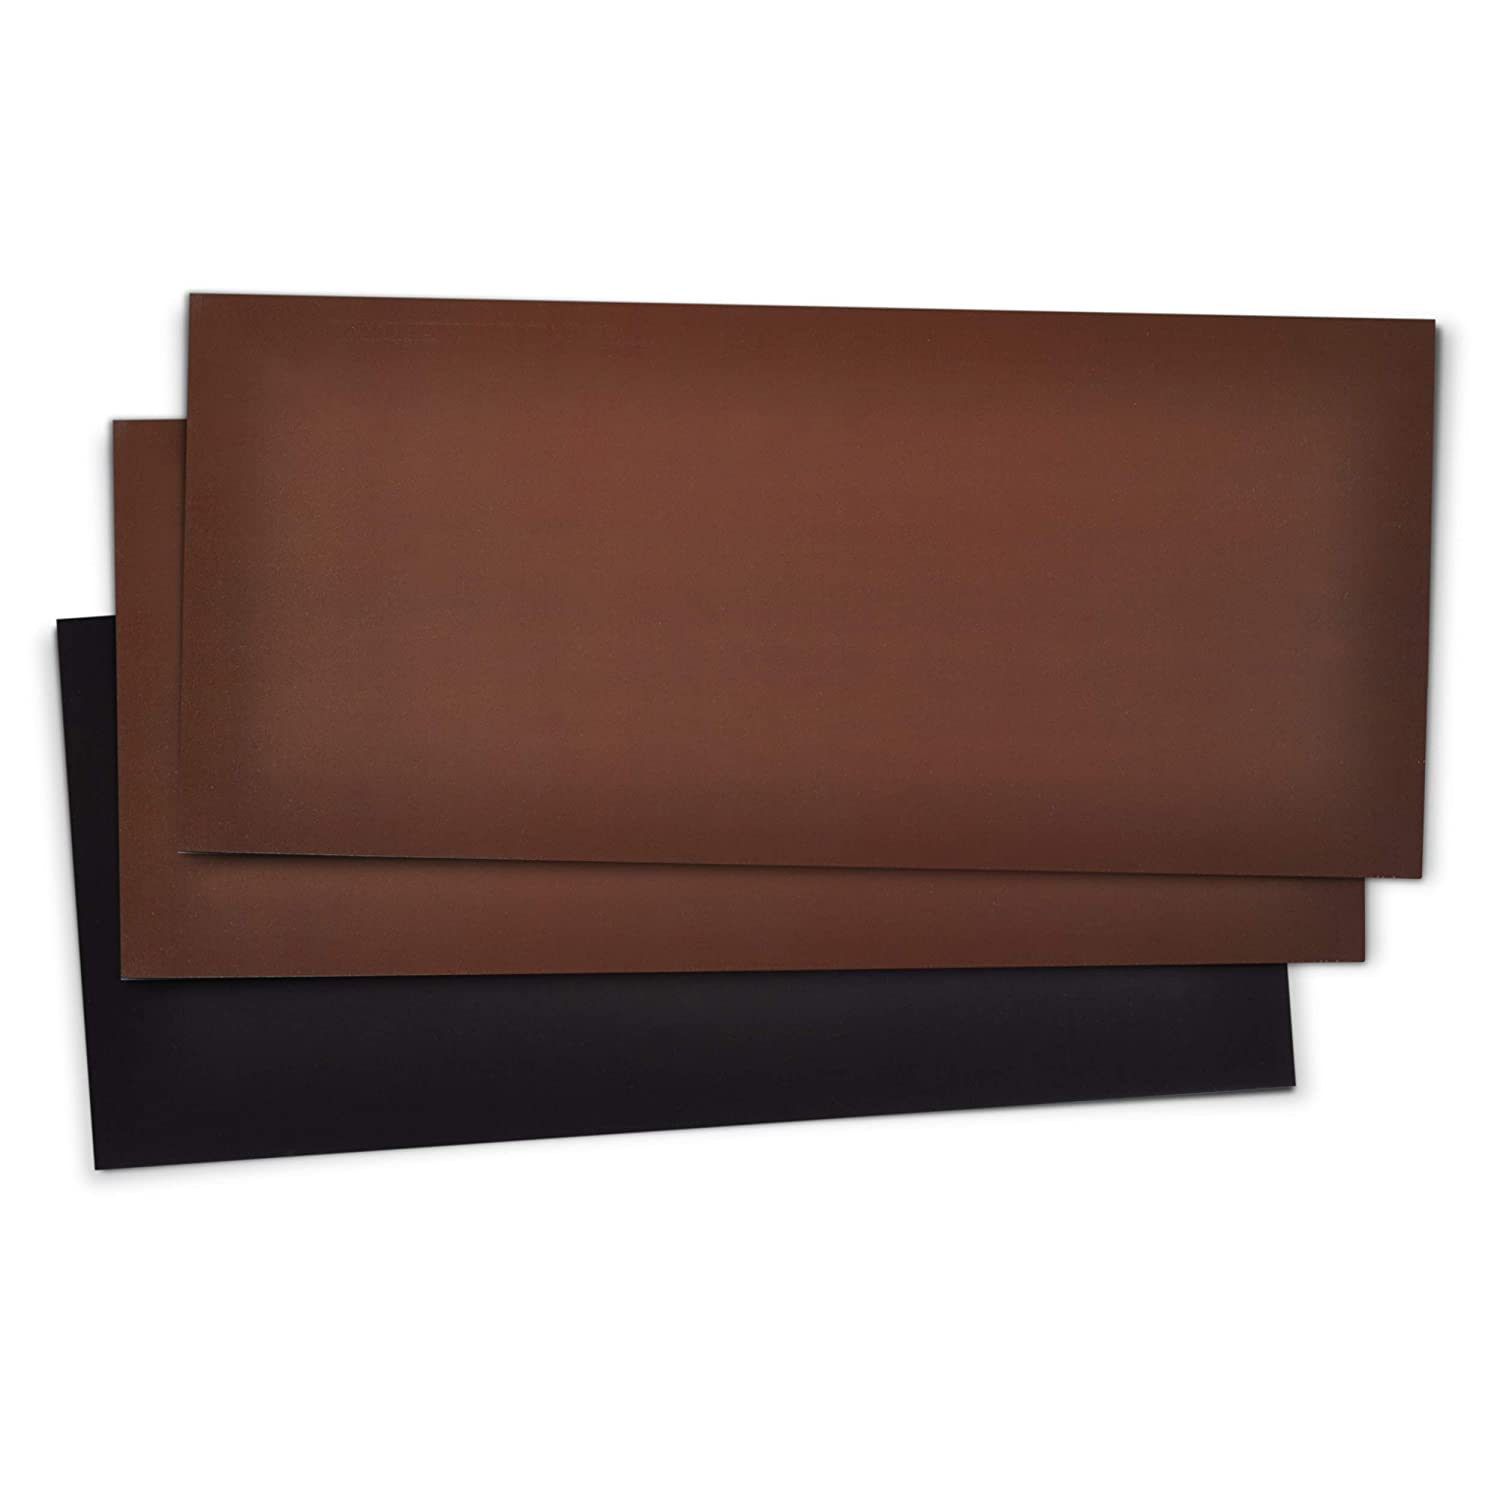 "5.5"" x 12 "" Extra Magnetic Floor Vent Covers (3-Pack) Stronger Magnet for Floor Air Registers (Brown) for RV, Home HVAC, AC and Furnace Vents (Not for Ceiling Vents)"